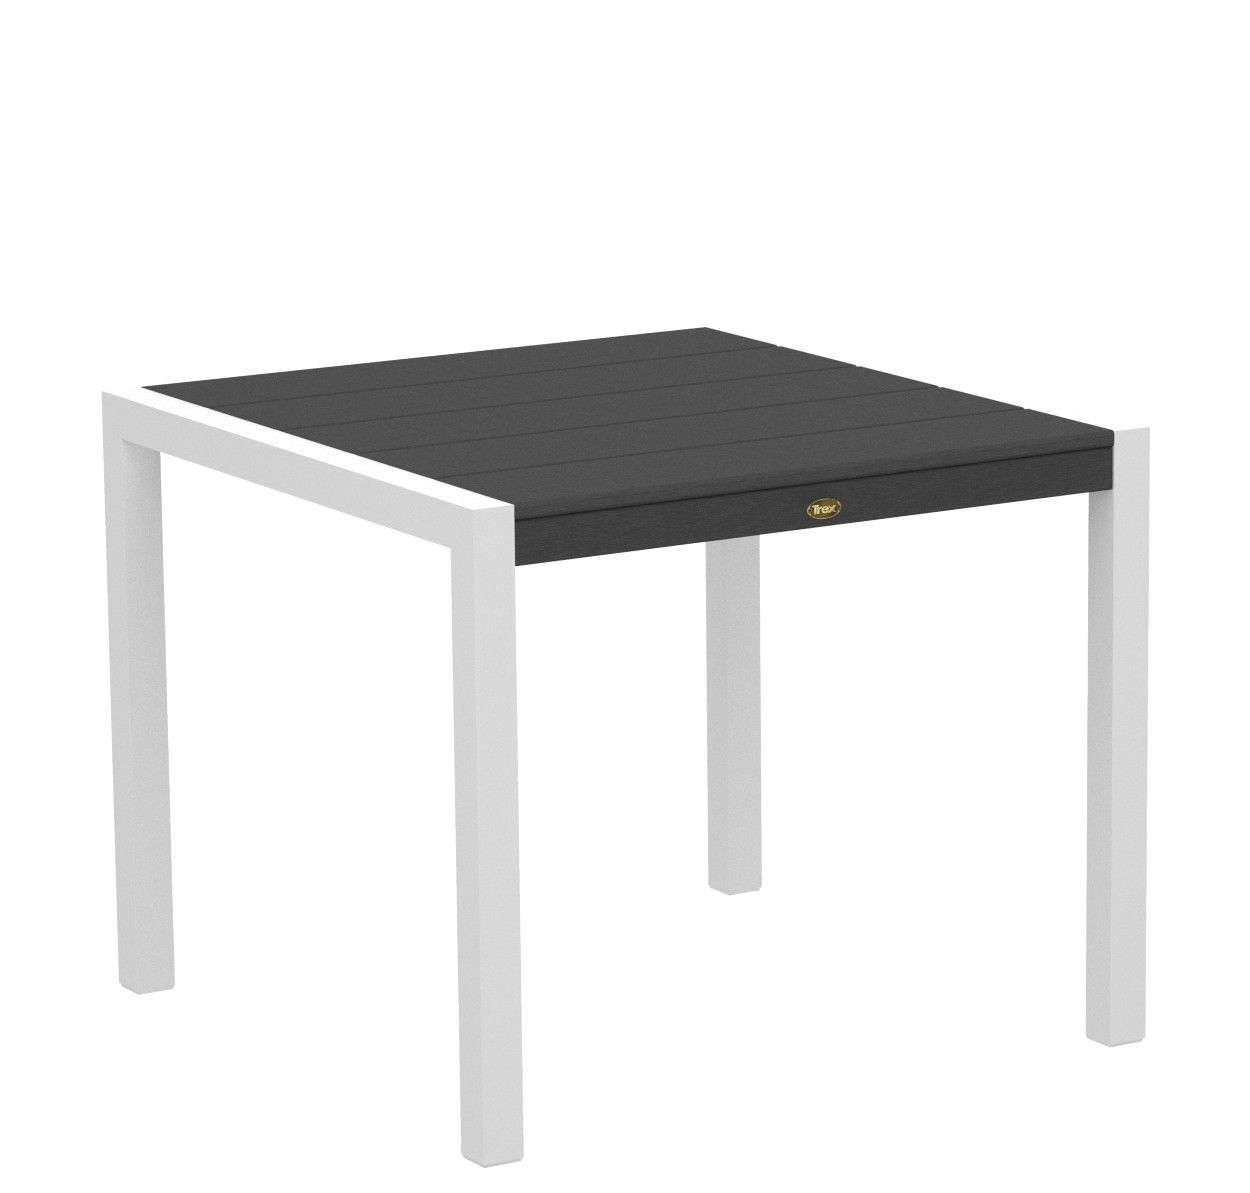 Trex Outdoor Surf City Dining Table